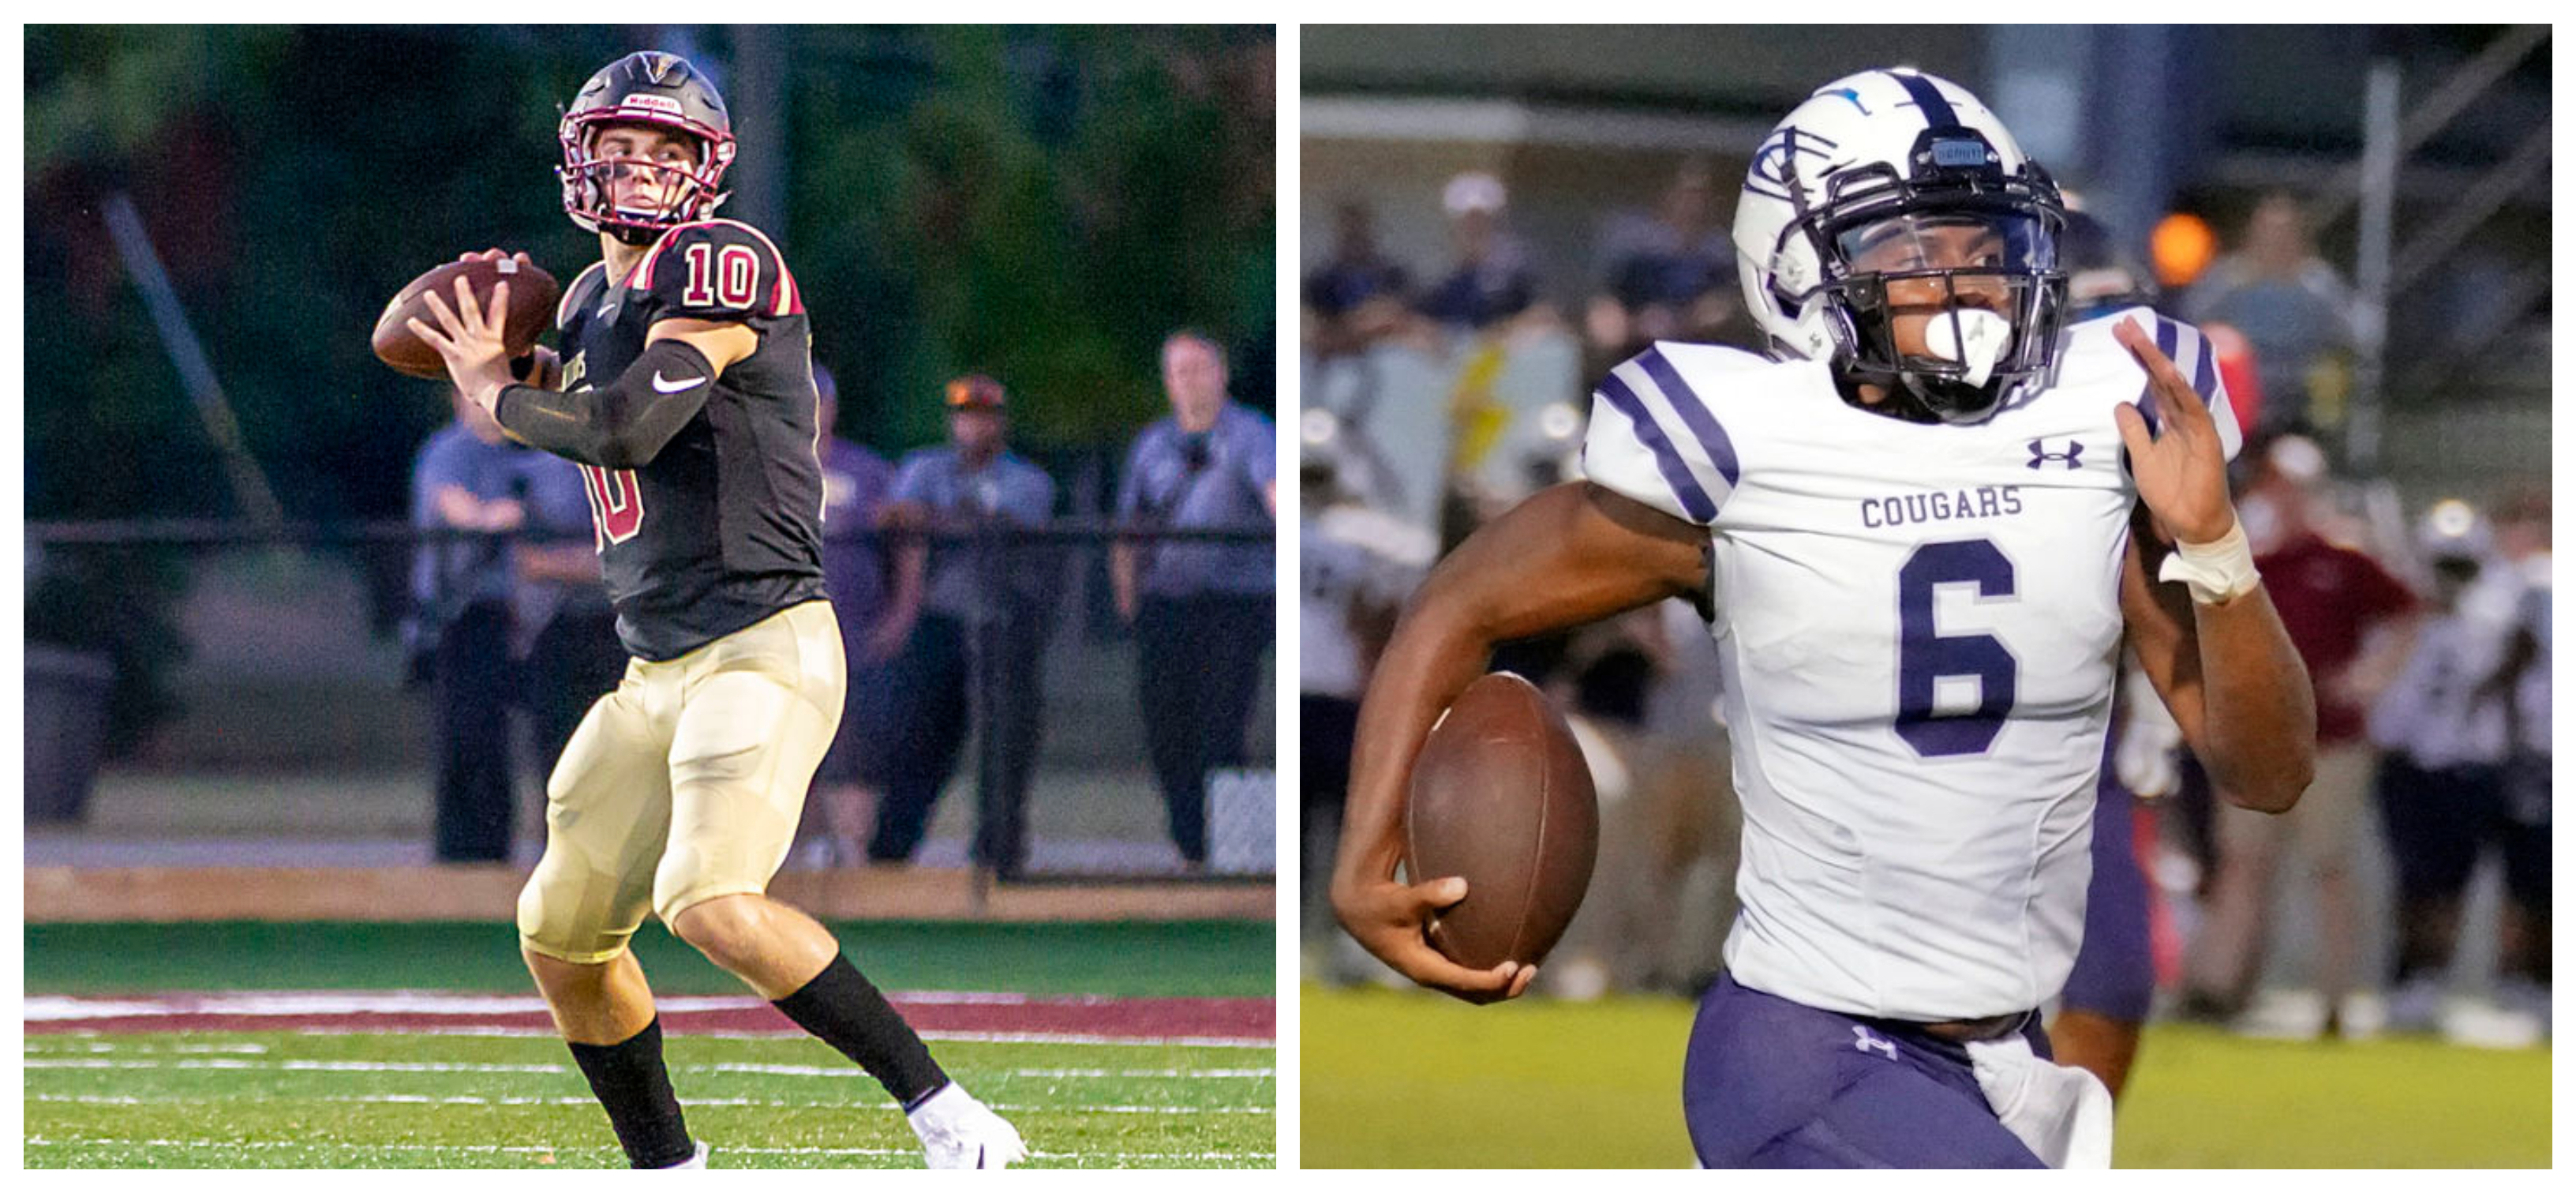 6A North Semifinal Preview: Pinson Valley vs. Clay-Chalkville